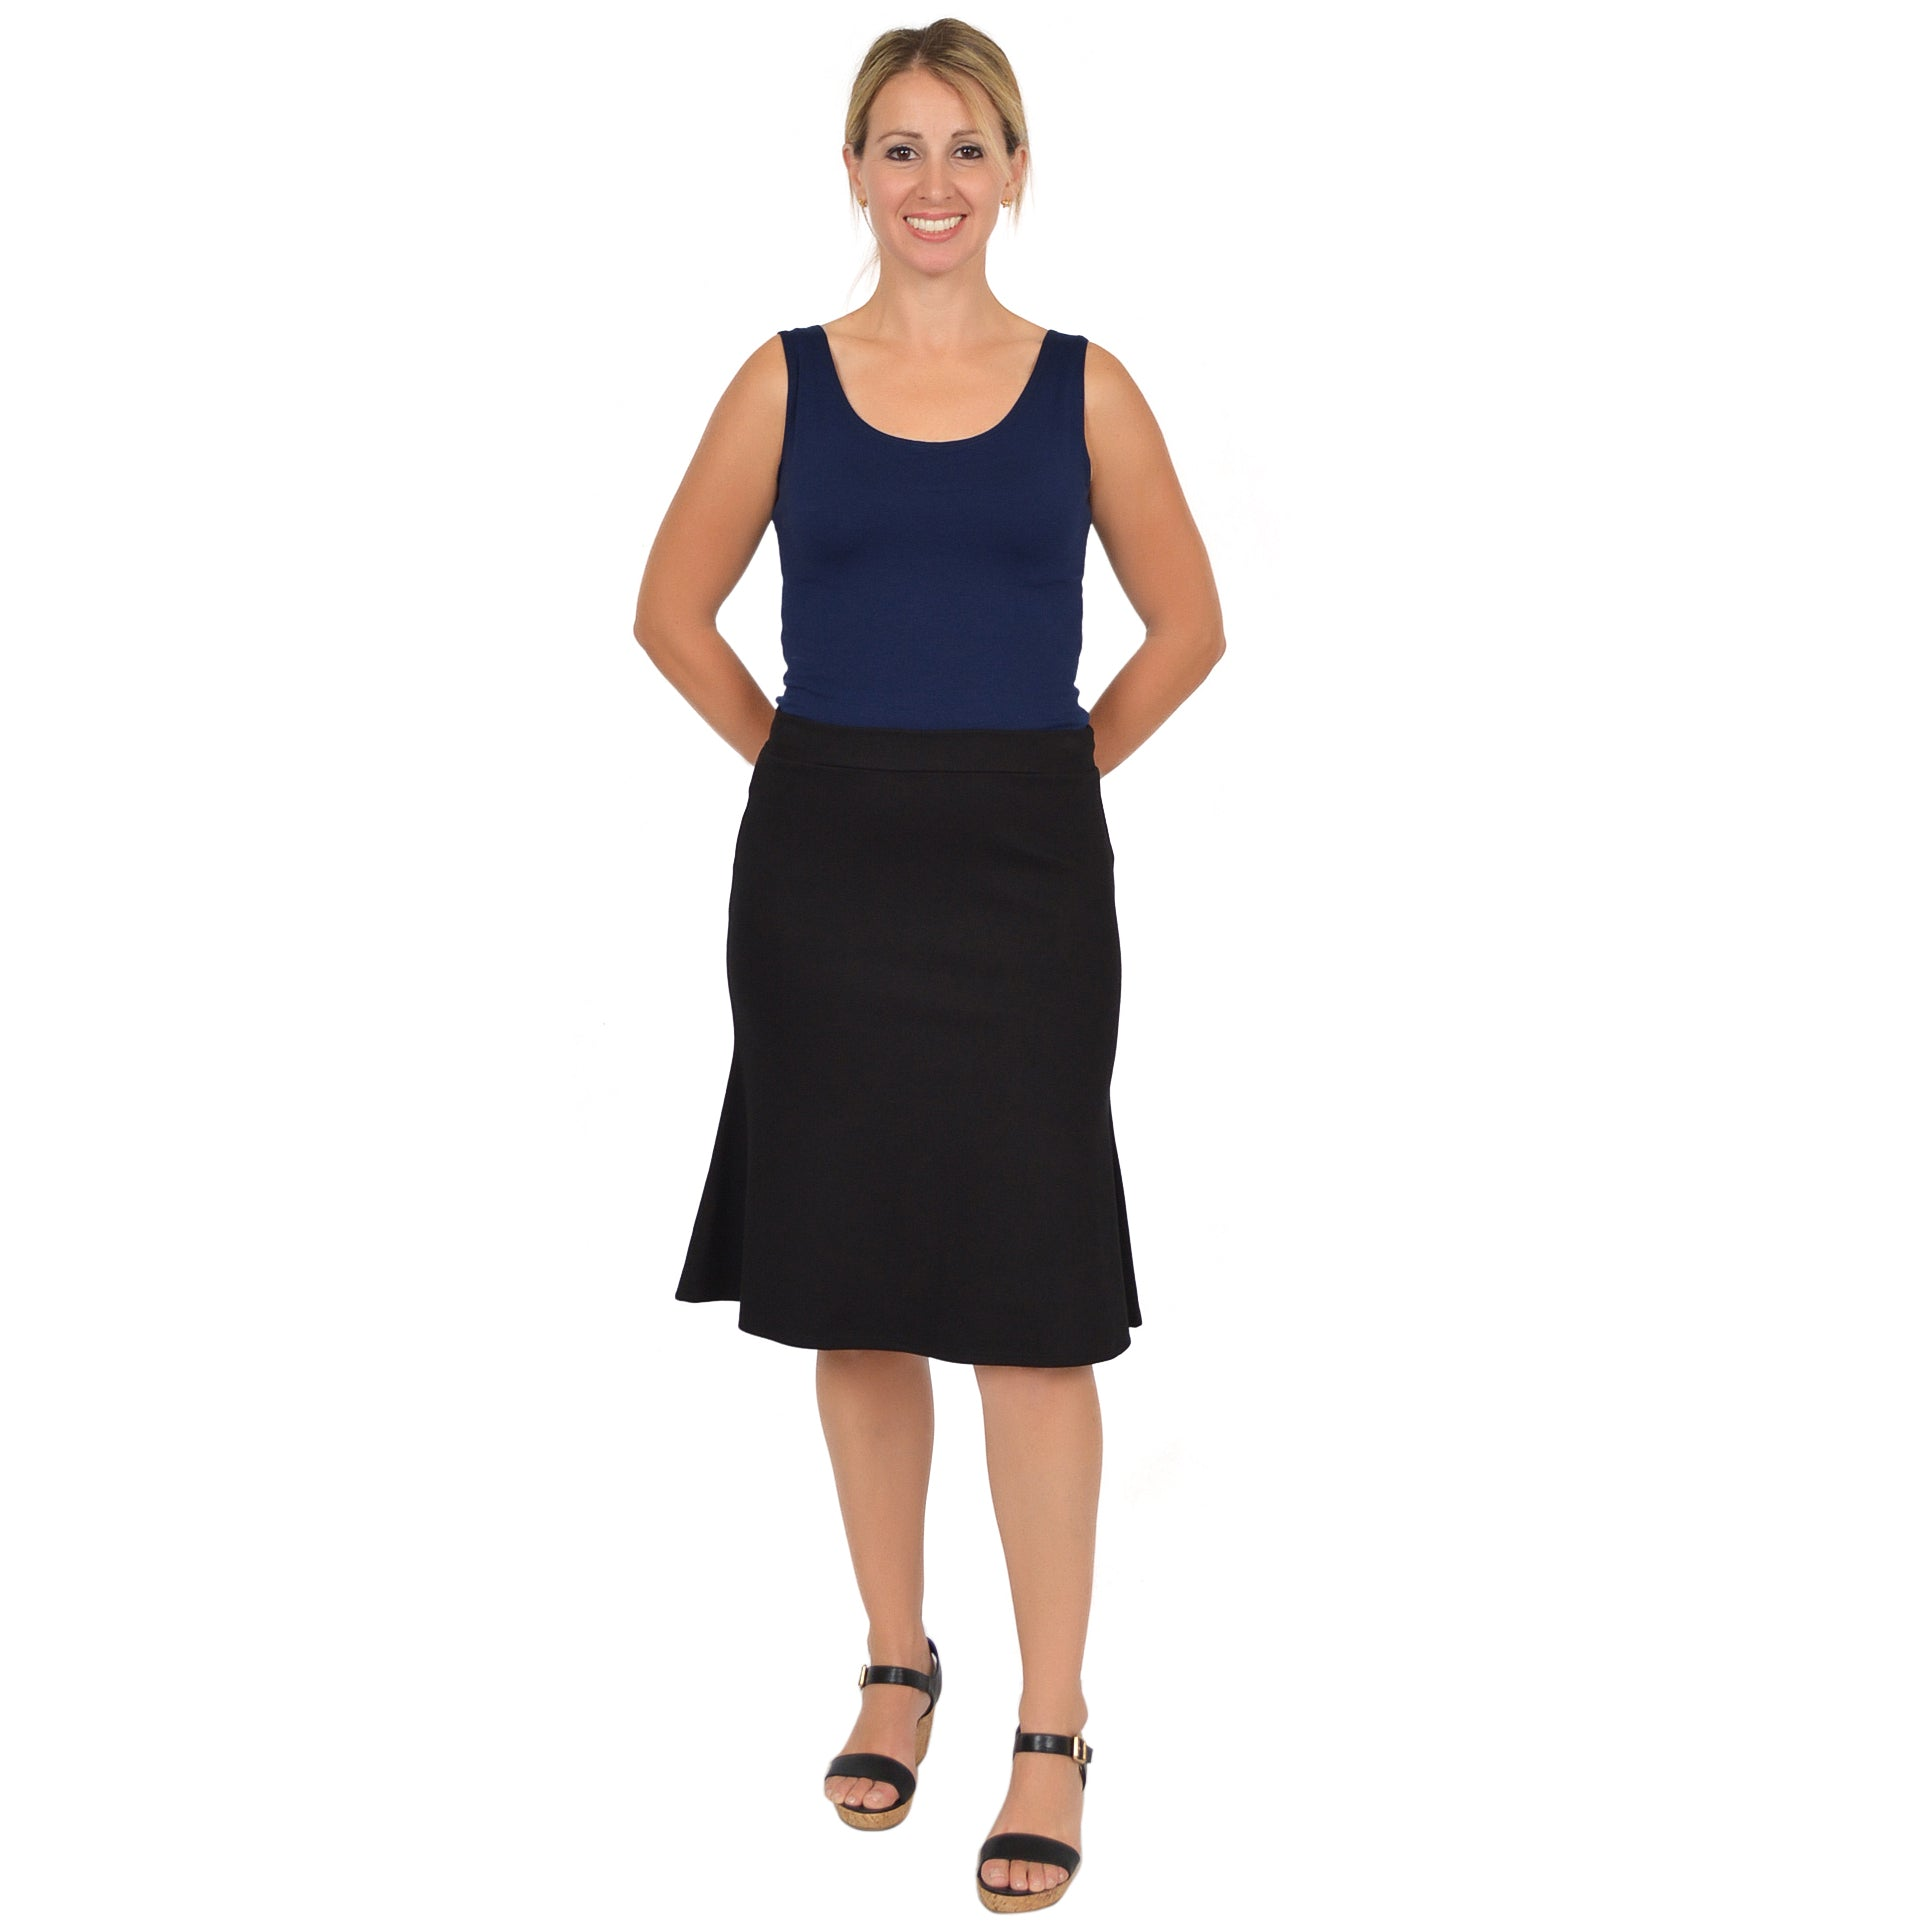 Women's Flared Trumpet Skirt